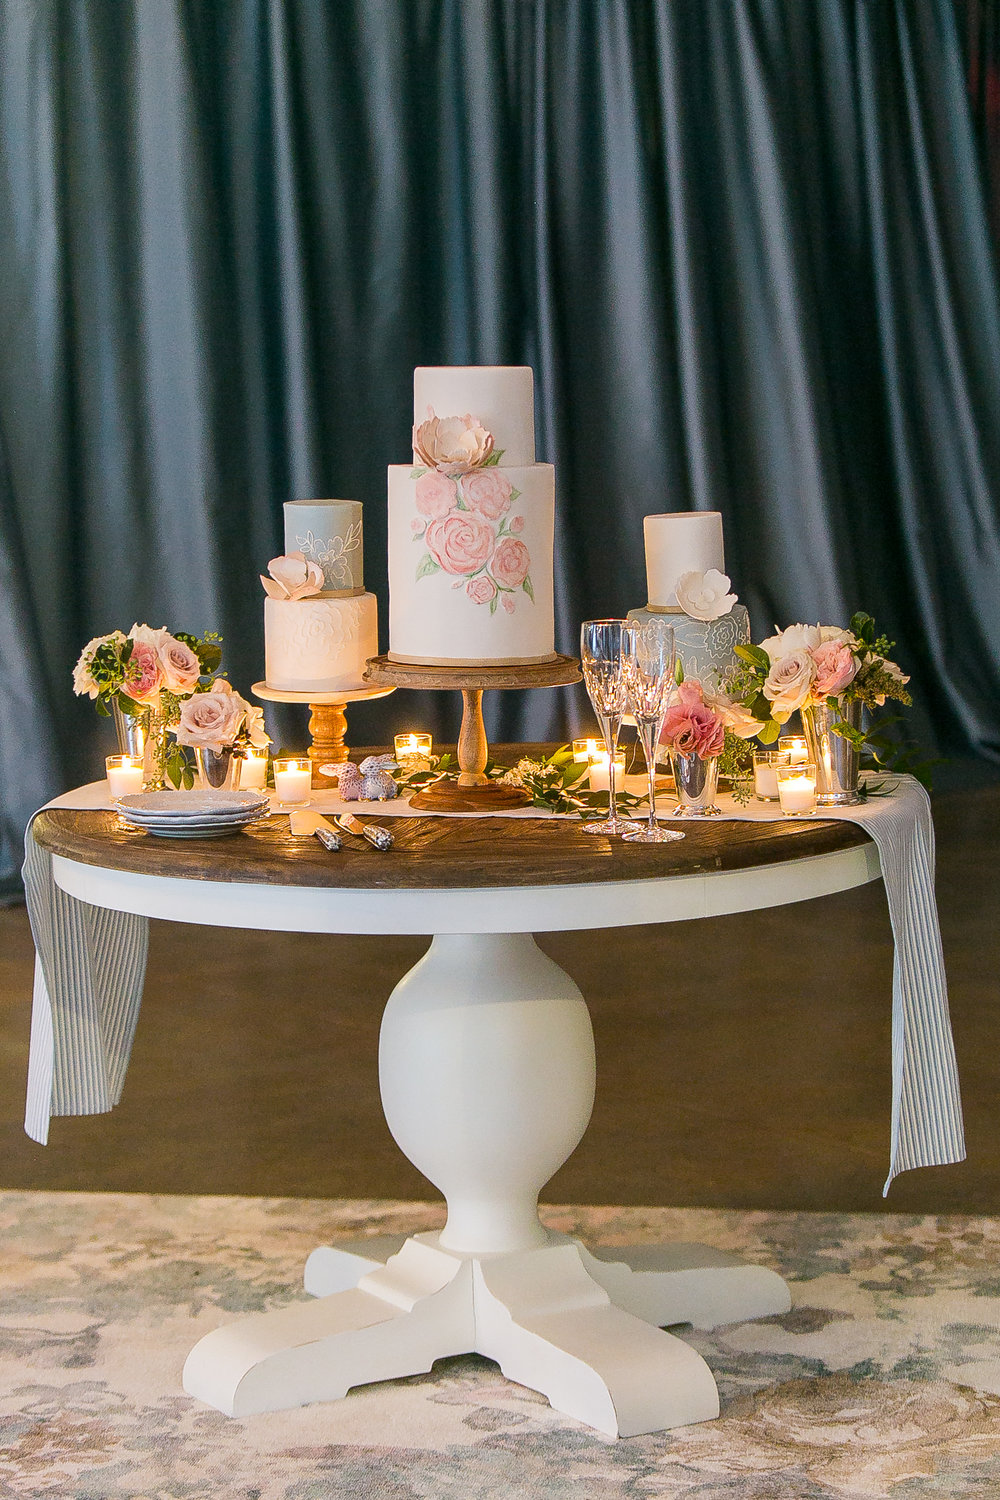 Southern Summer at Home Wedding Barn Chapel Hill NC cake table